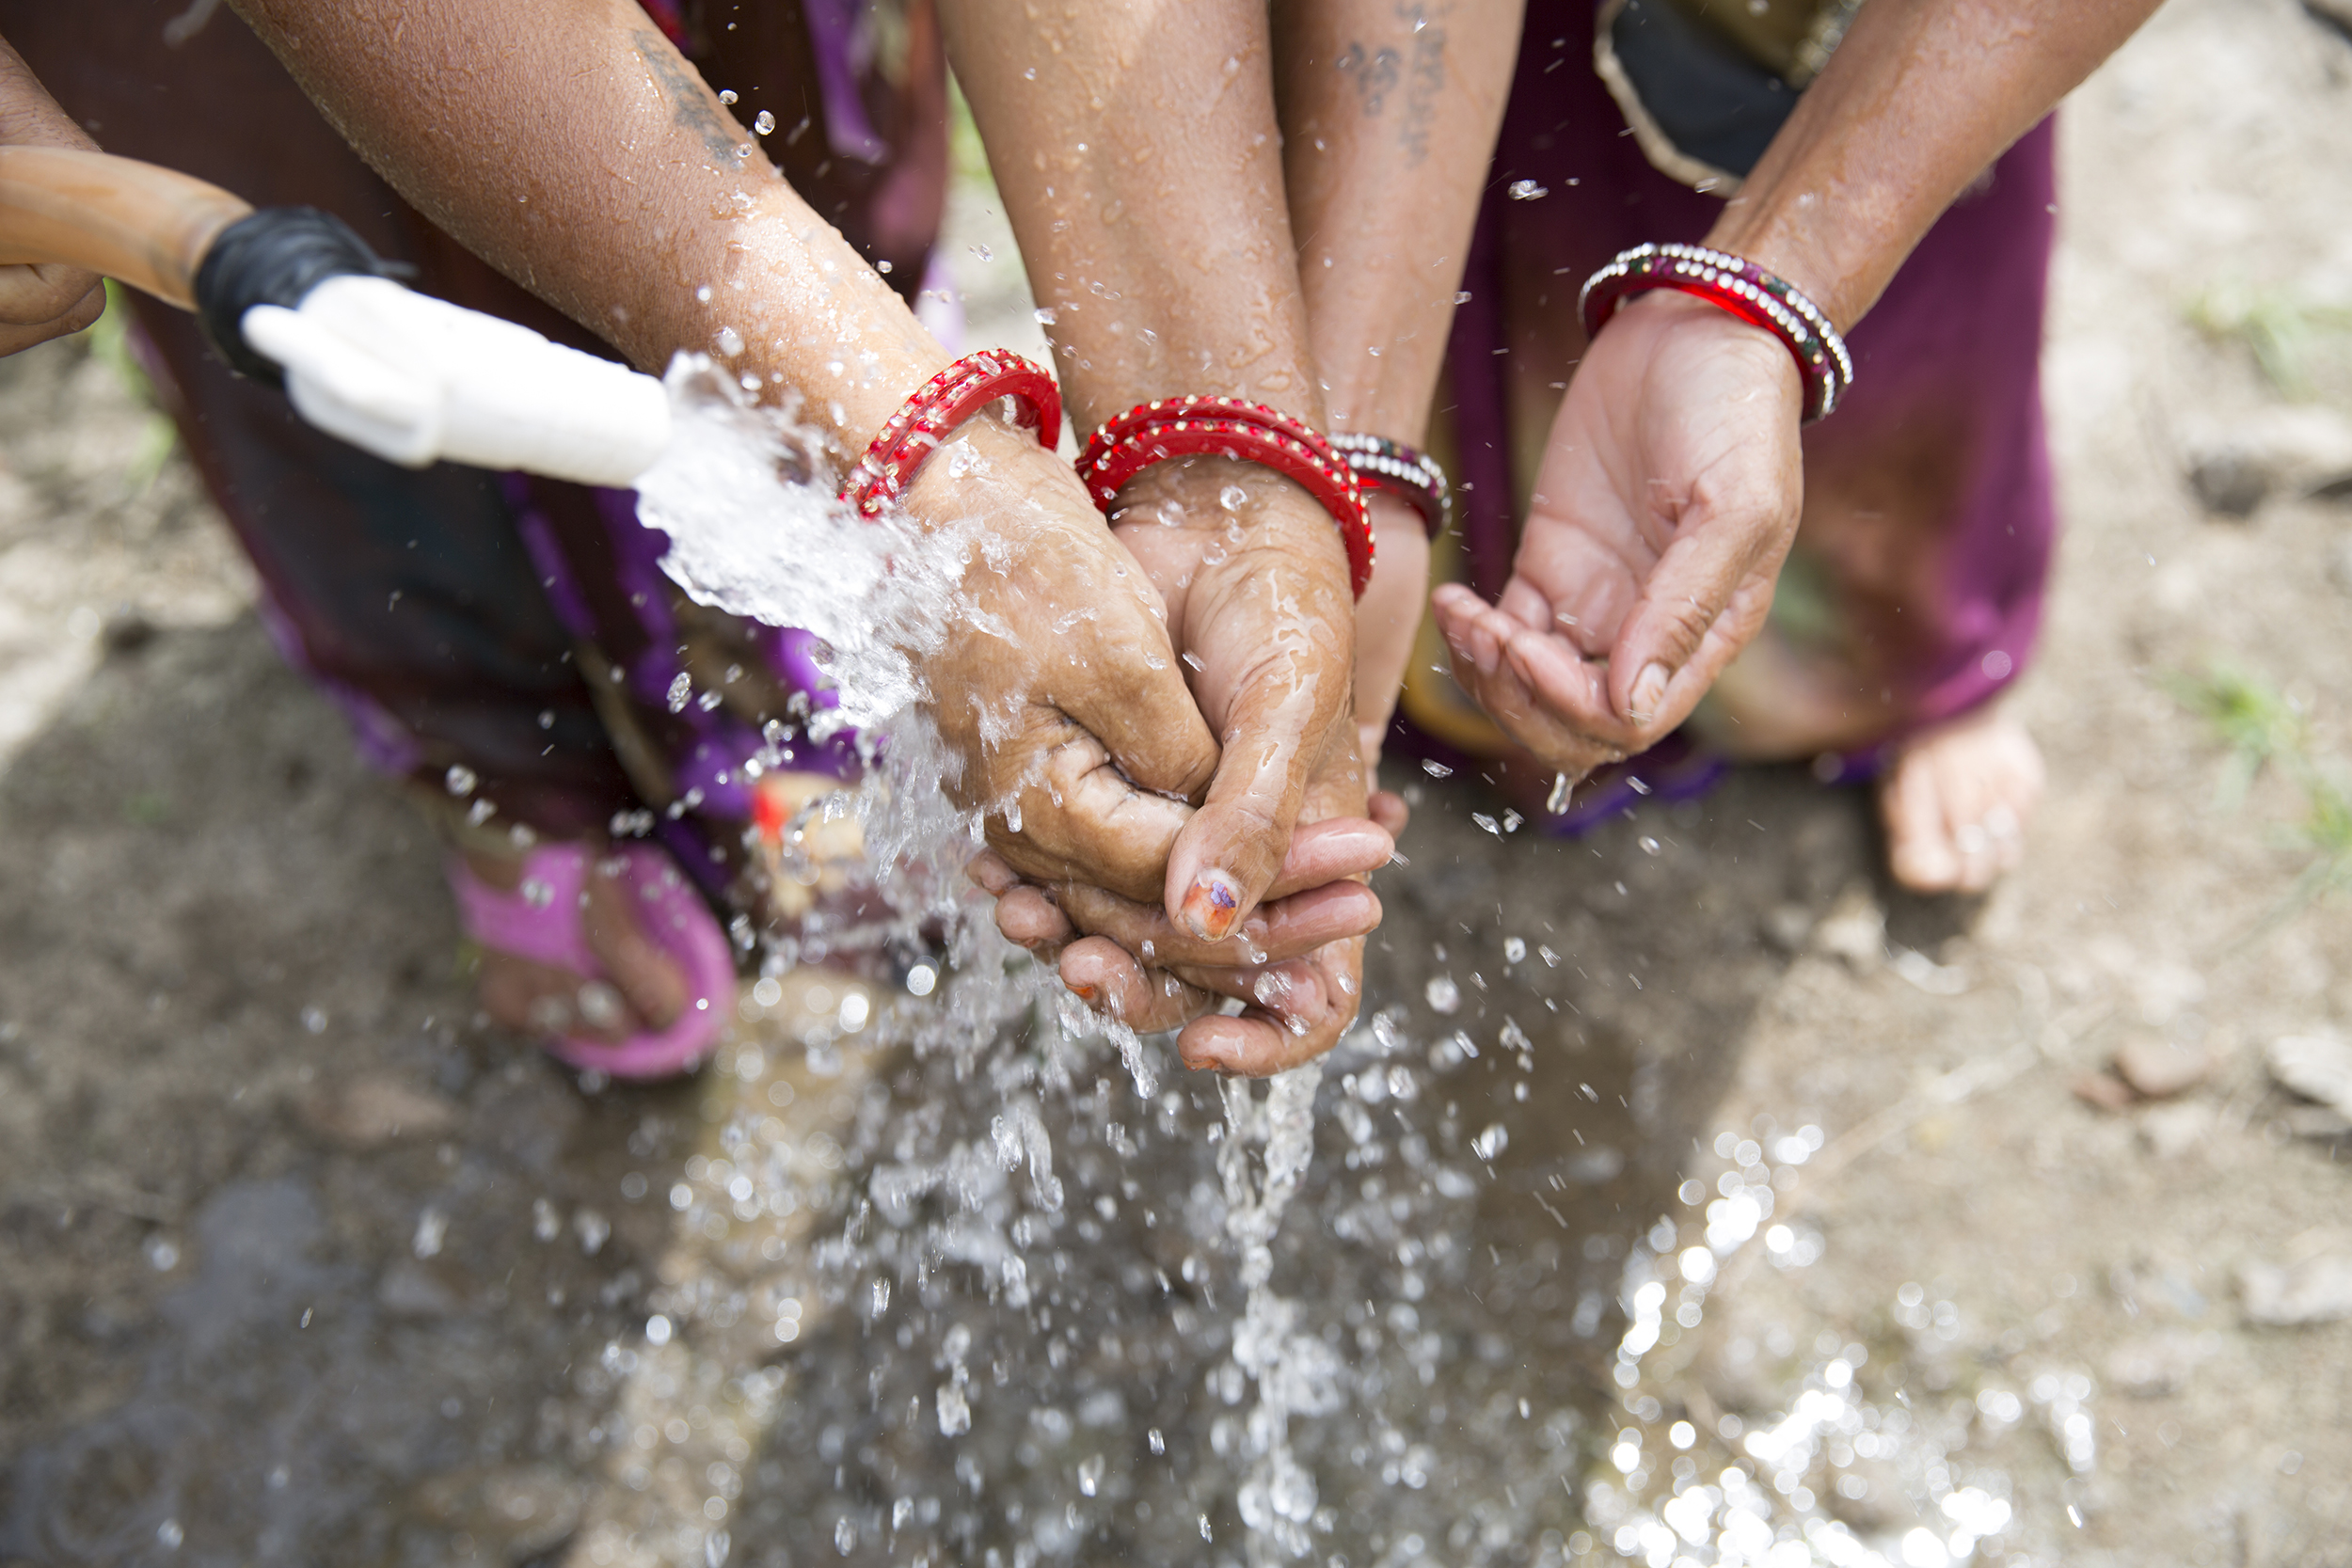 india-womenandwater-K23A0539.jpg